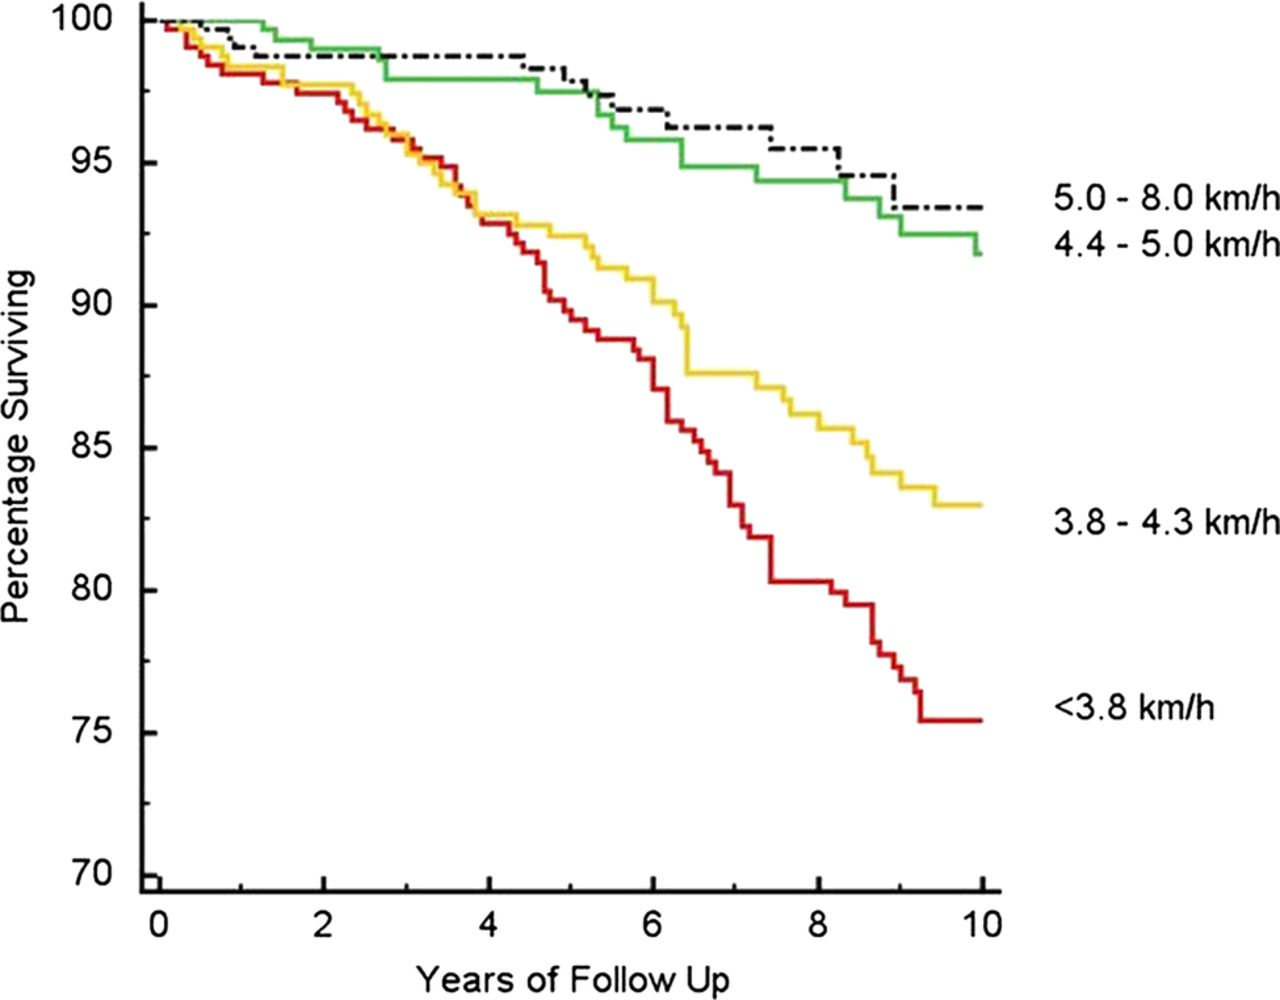 Treadmill walking speed and survival prediction in men with cardiovascular  disease: a 10-year follow-up study | BMJ Open